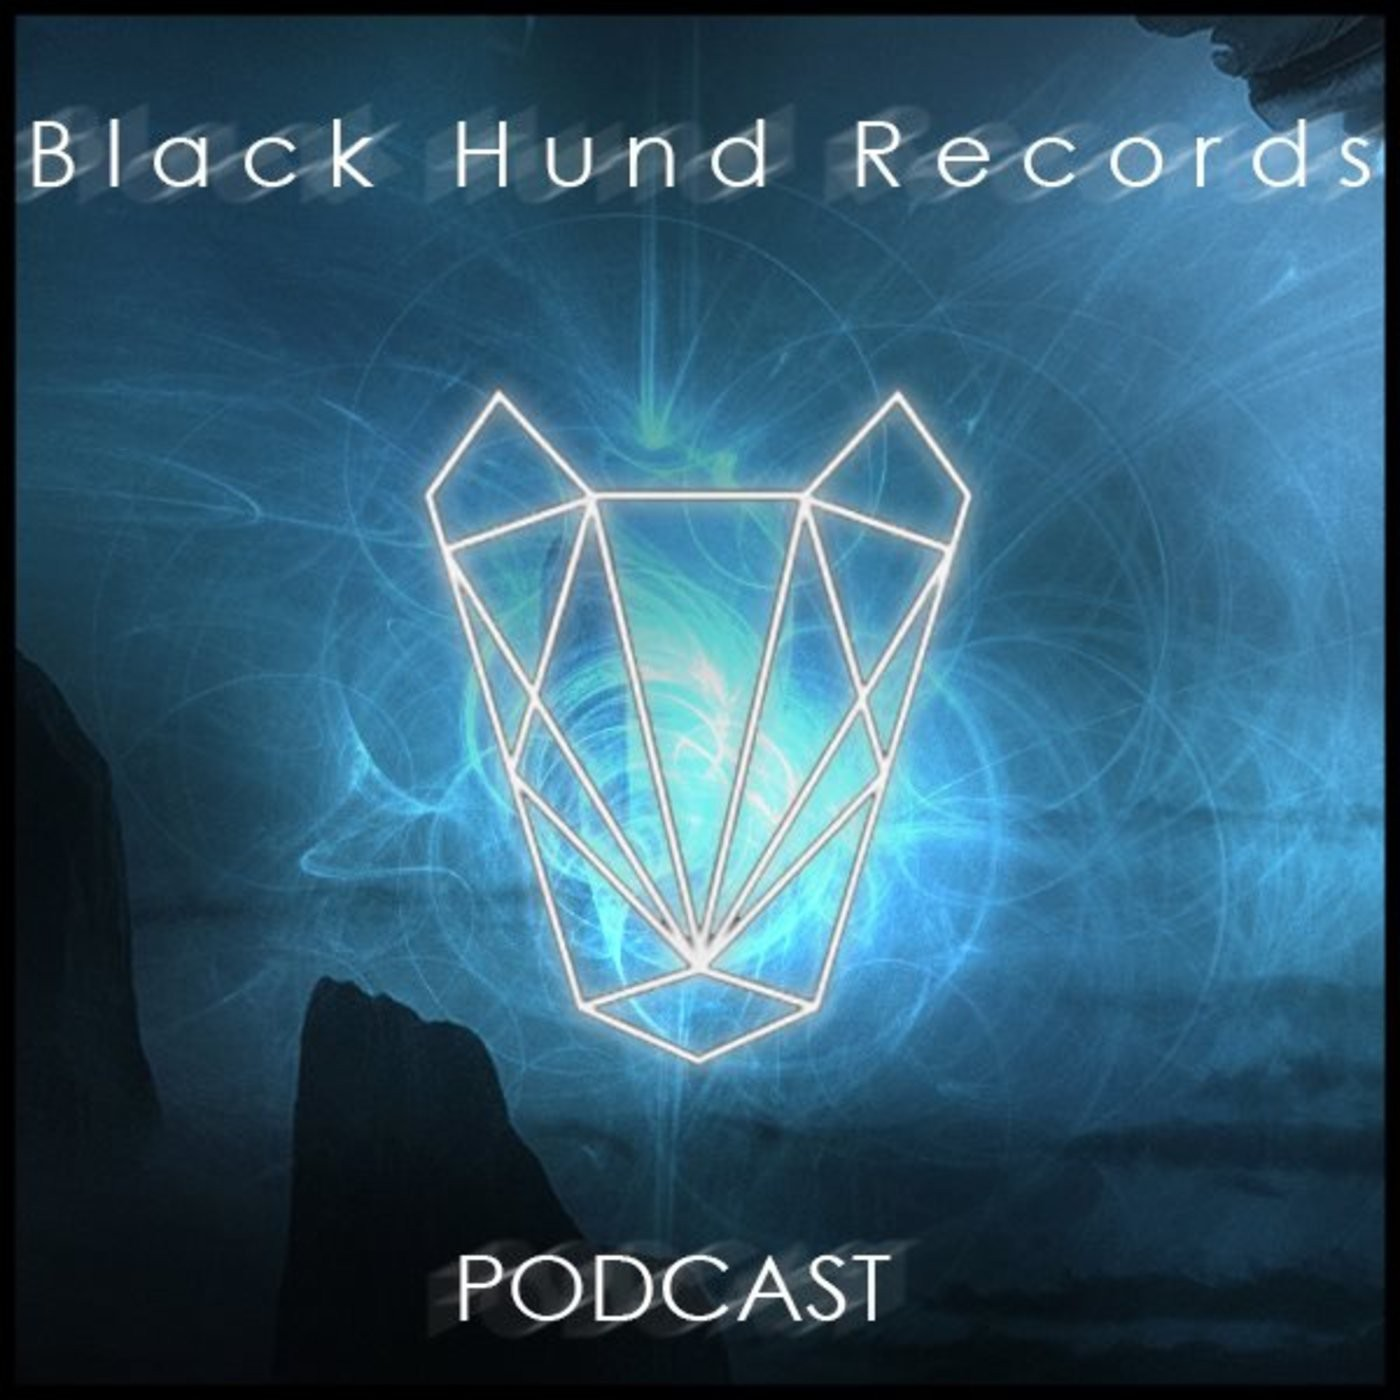 Black Hund Records Podcast